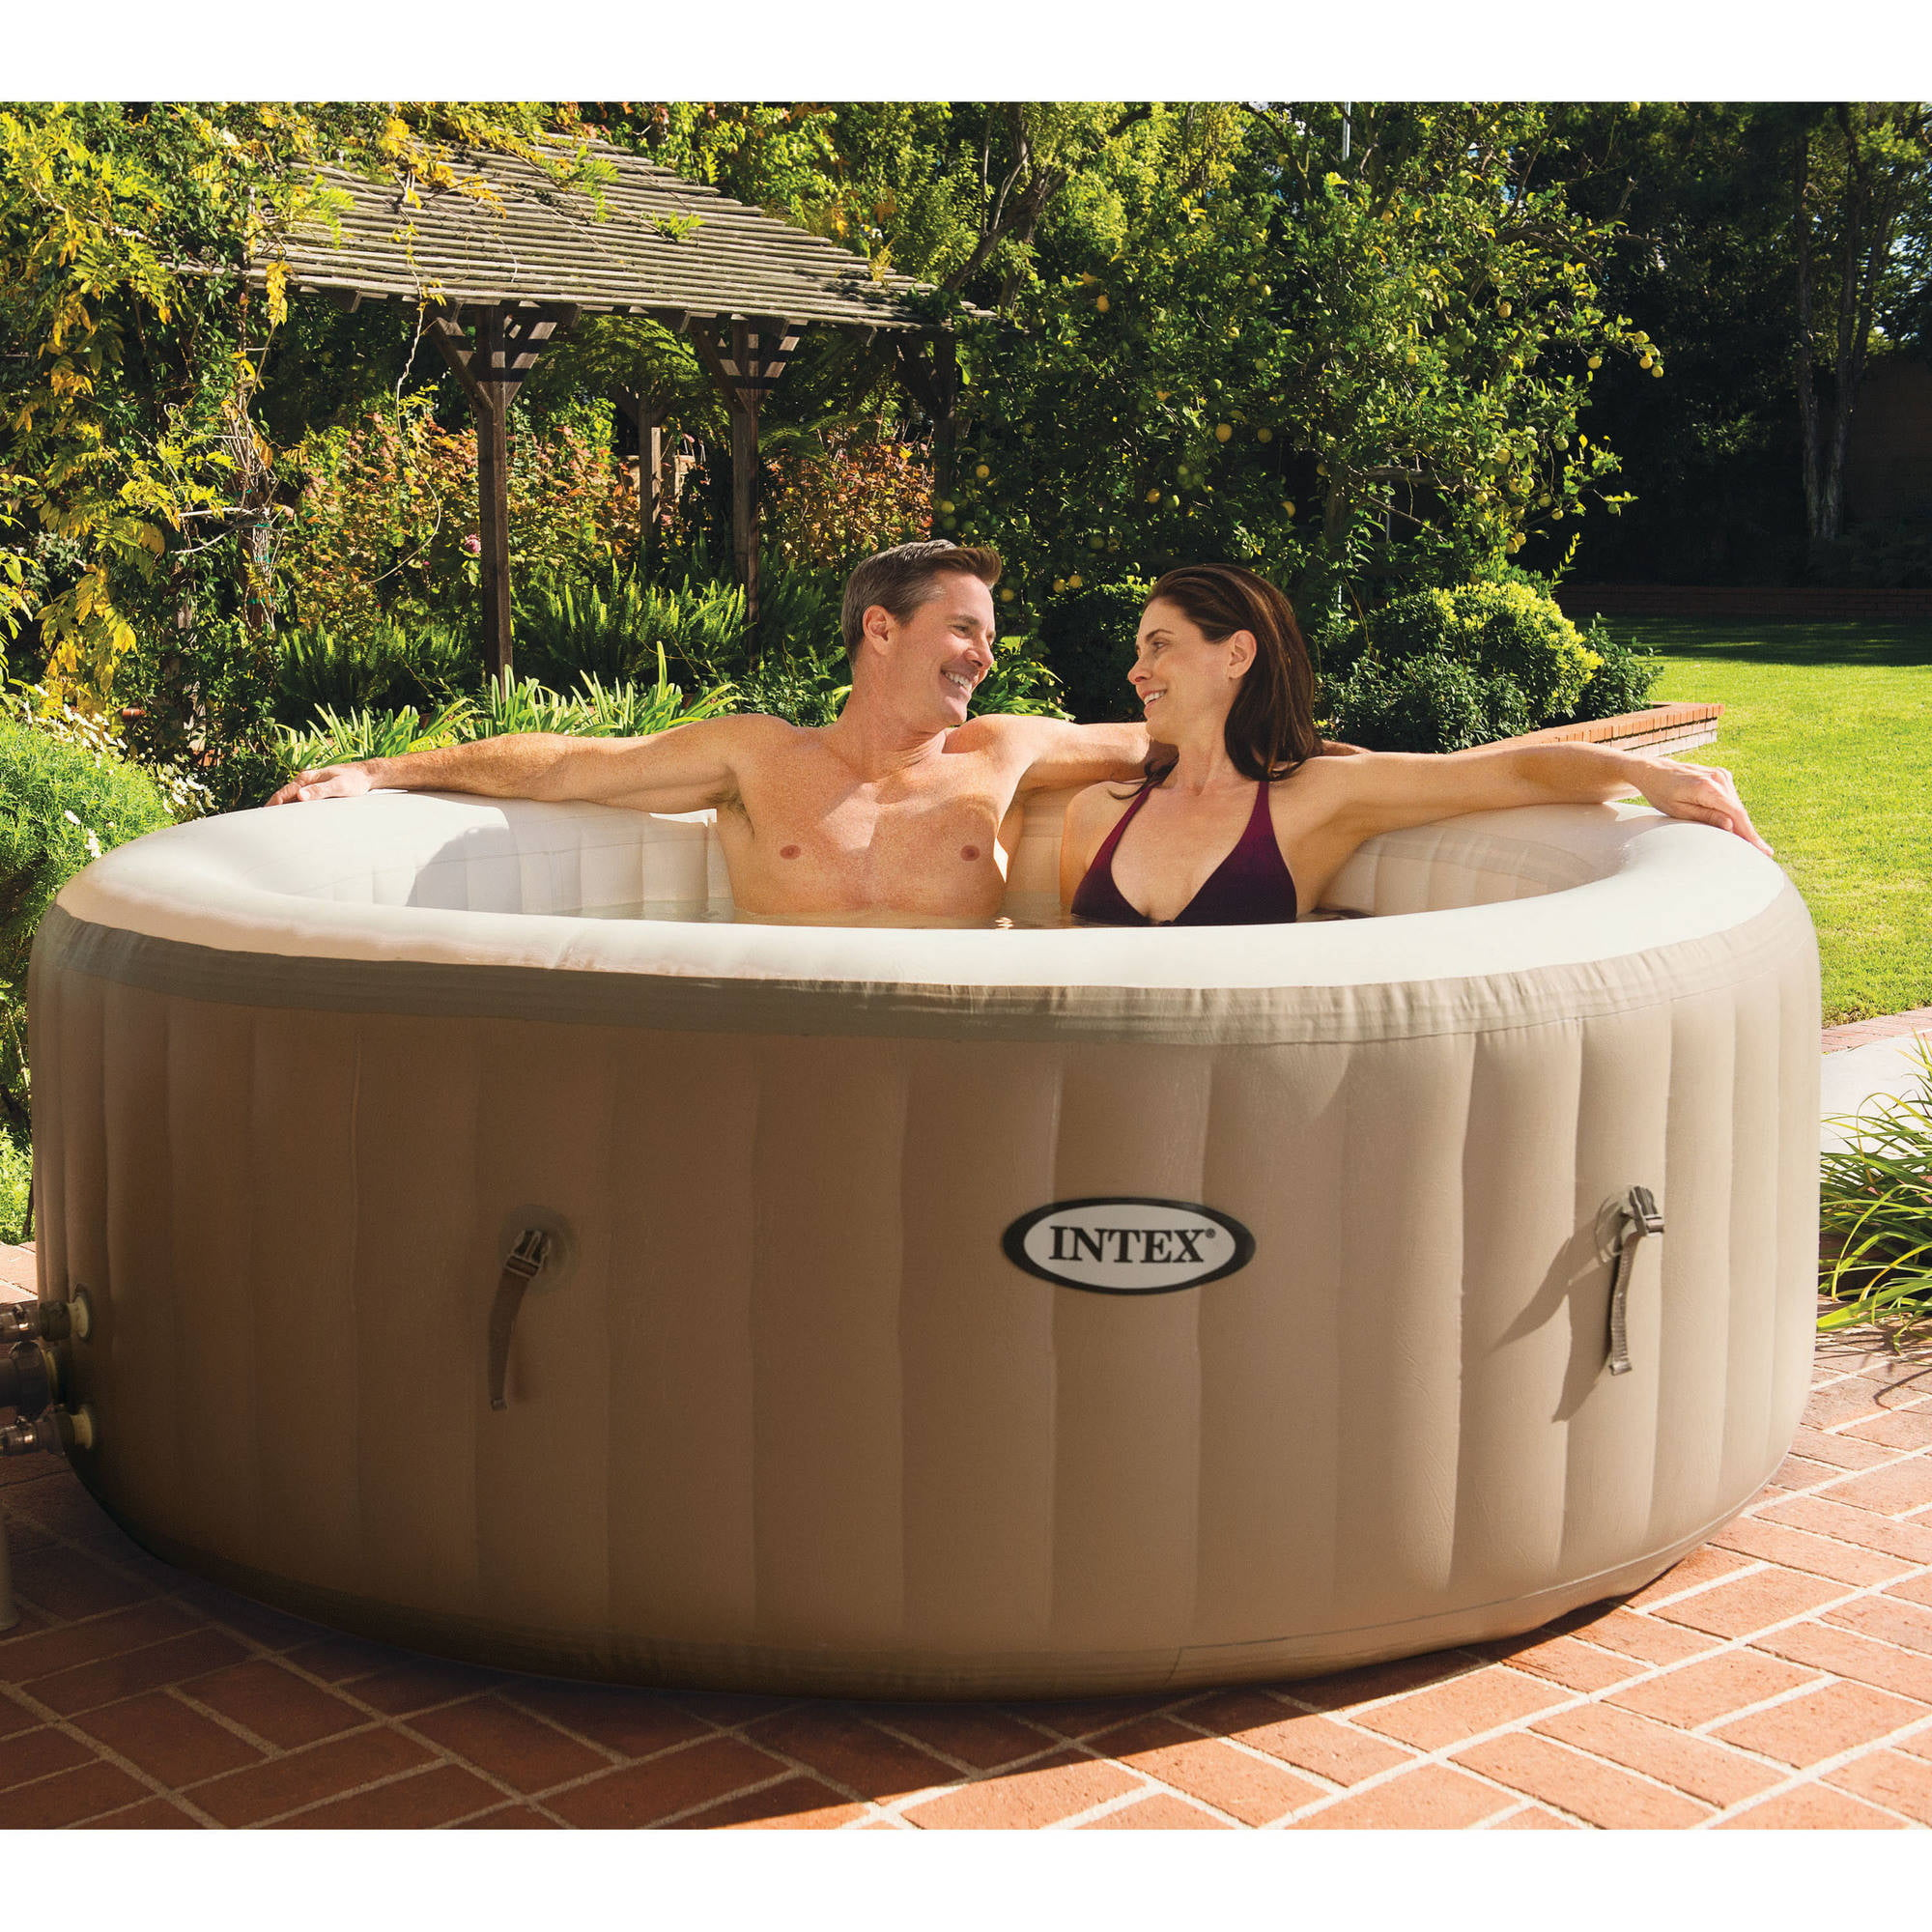 Intex Pure Spa 4 Person Inflatable Portable Hot Tub with 6 Filter